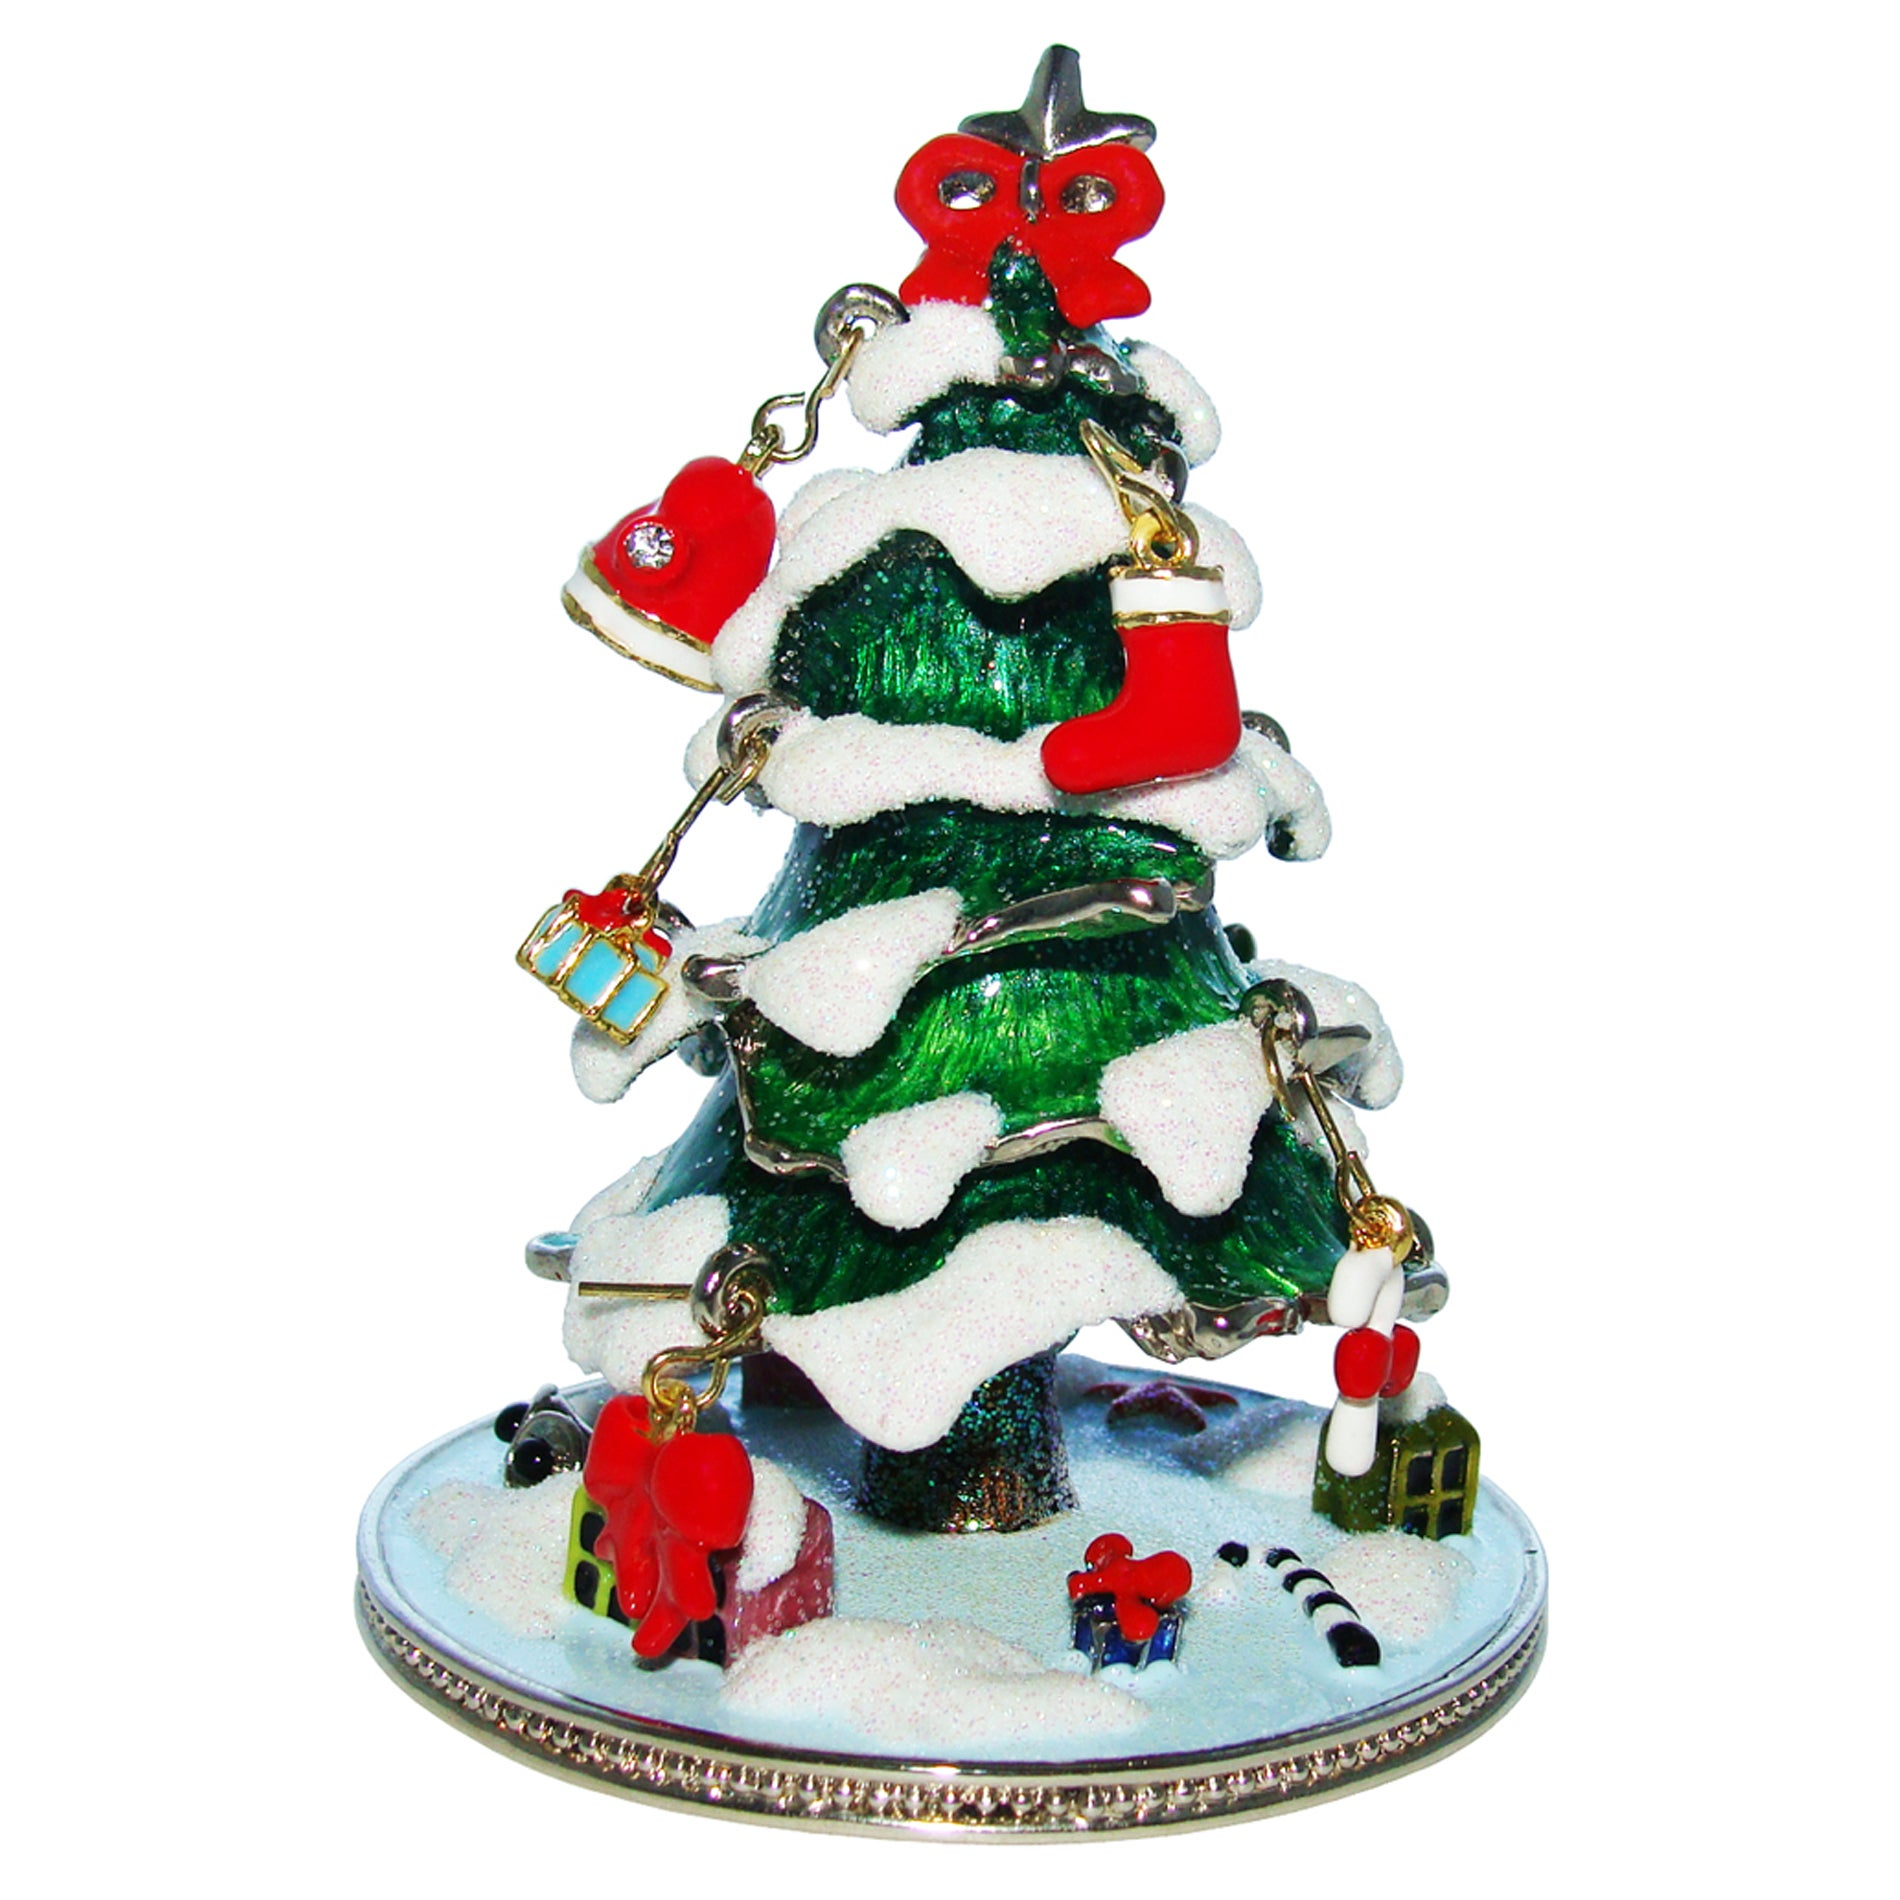 Objet d'art 'The First Noel' Christmas Tree Trinket Box